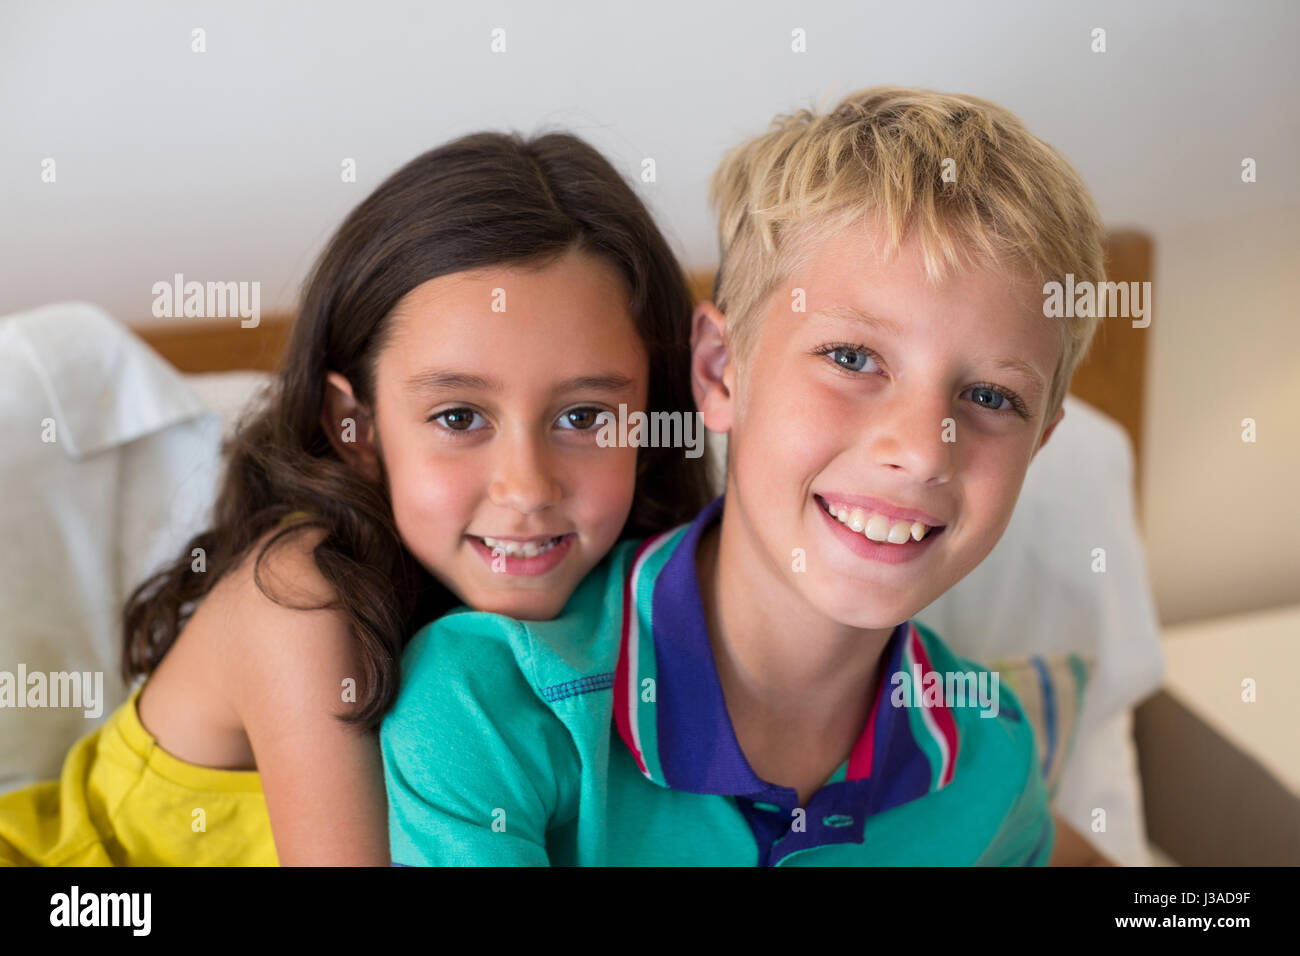 Portrait of smiling siblings embracing each other on bed in bedroom at home Stock Photo